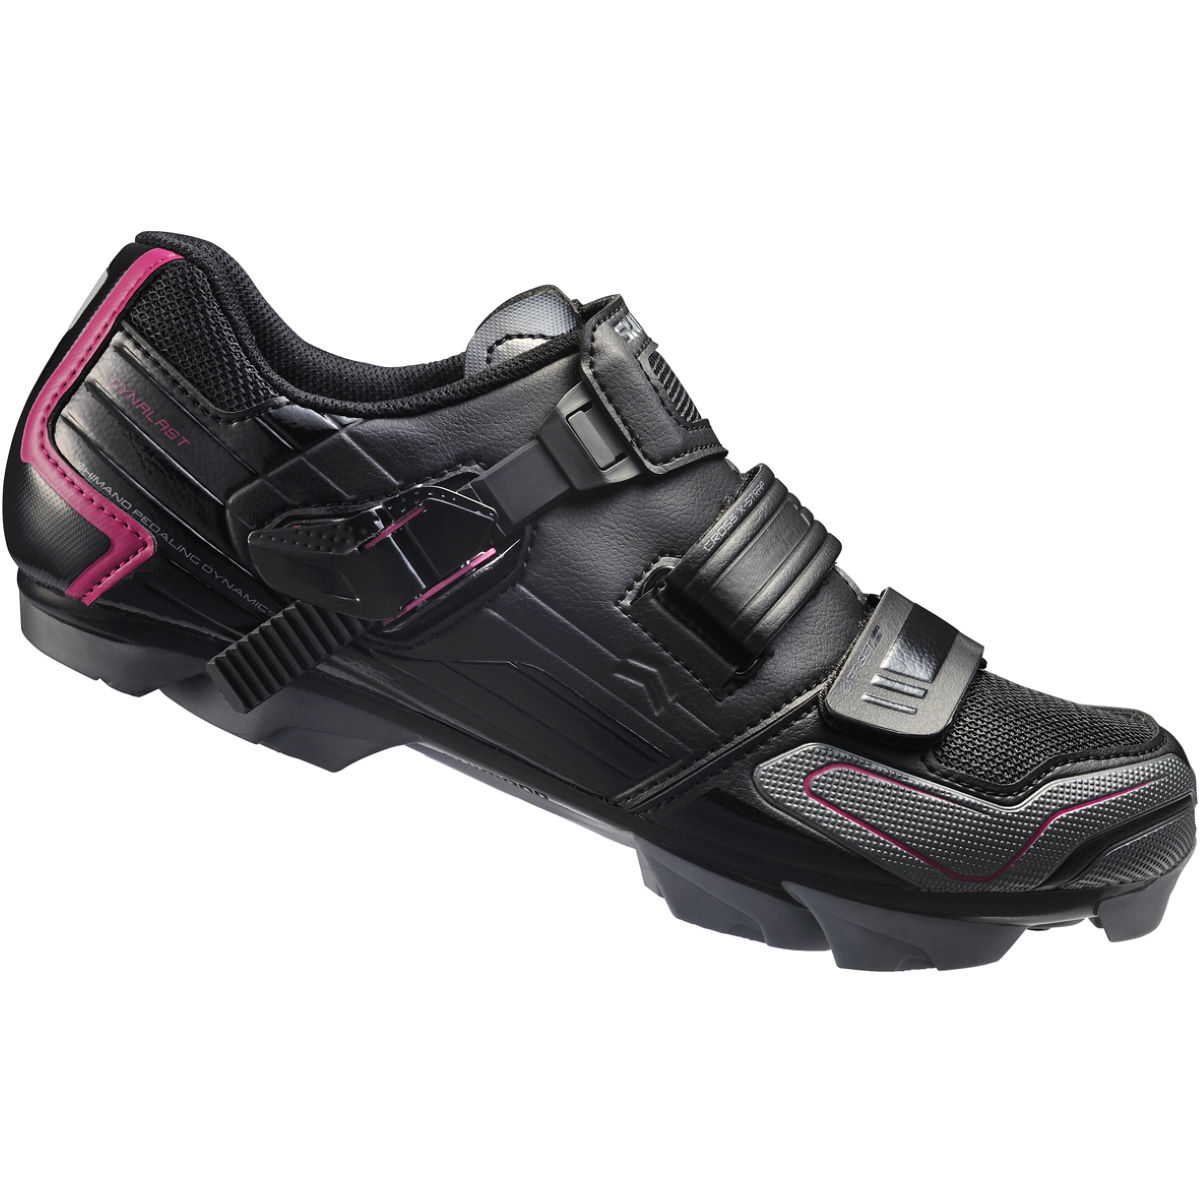 Cheap Shimano Shoes